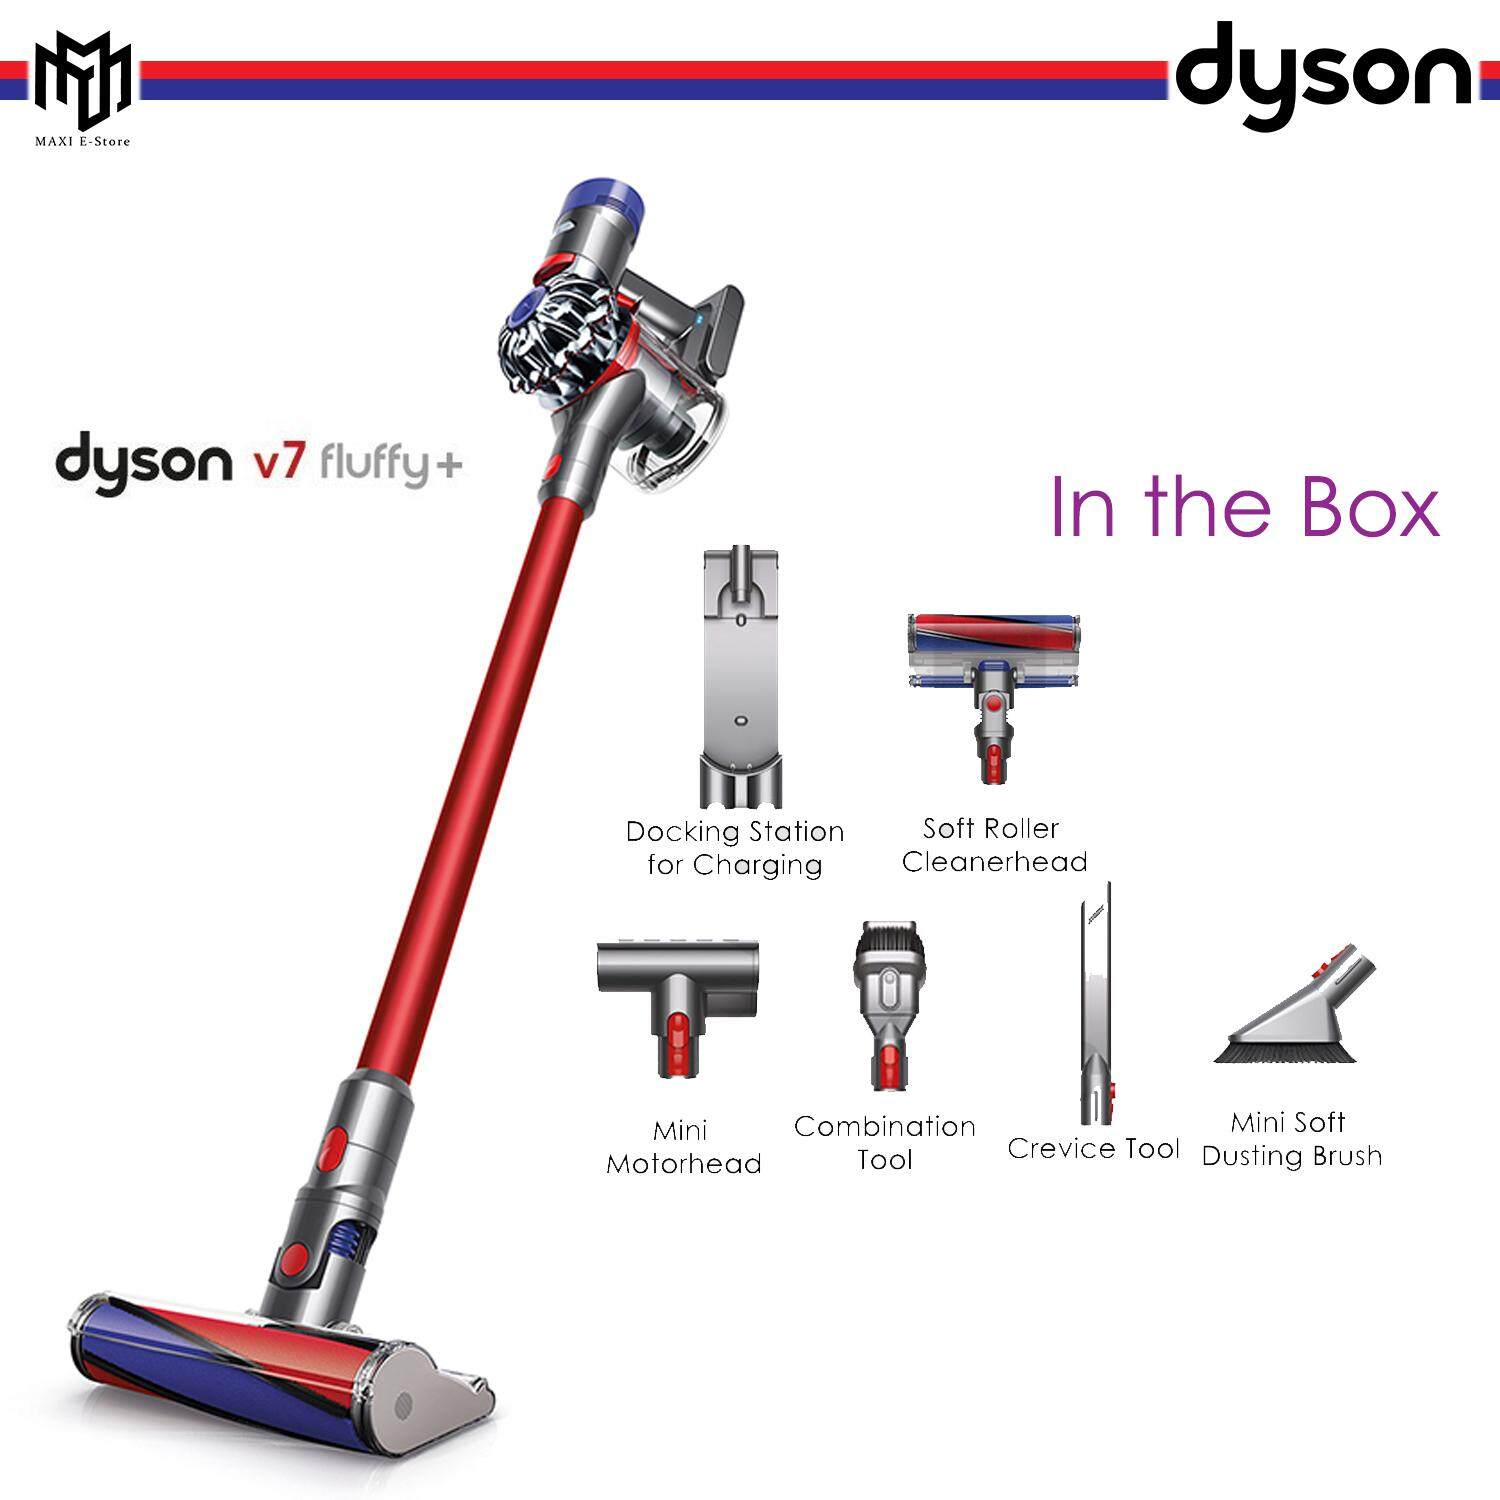 Dyson Vacuum Cleaners Price In Malaysia Best Pro Parts Diagram Addition Dc33 As Well Rug V7 Fluffy V Cleaner Cordless Soft Rooler